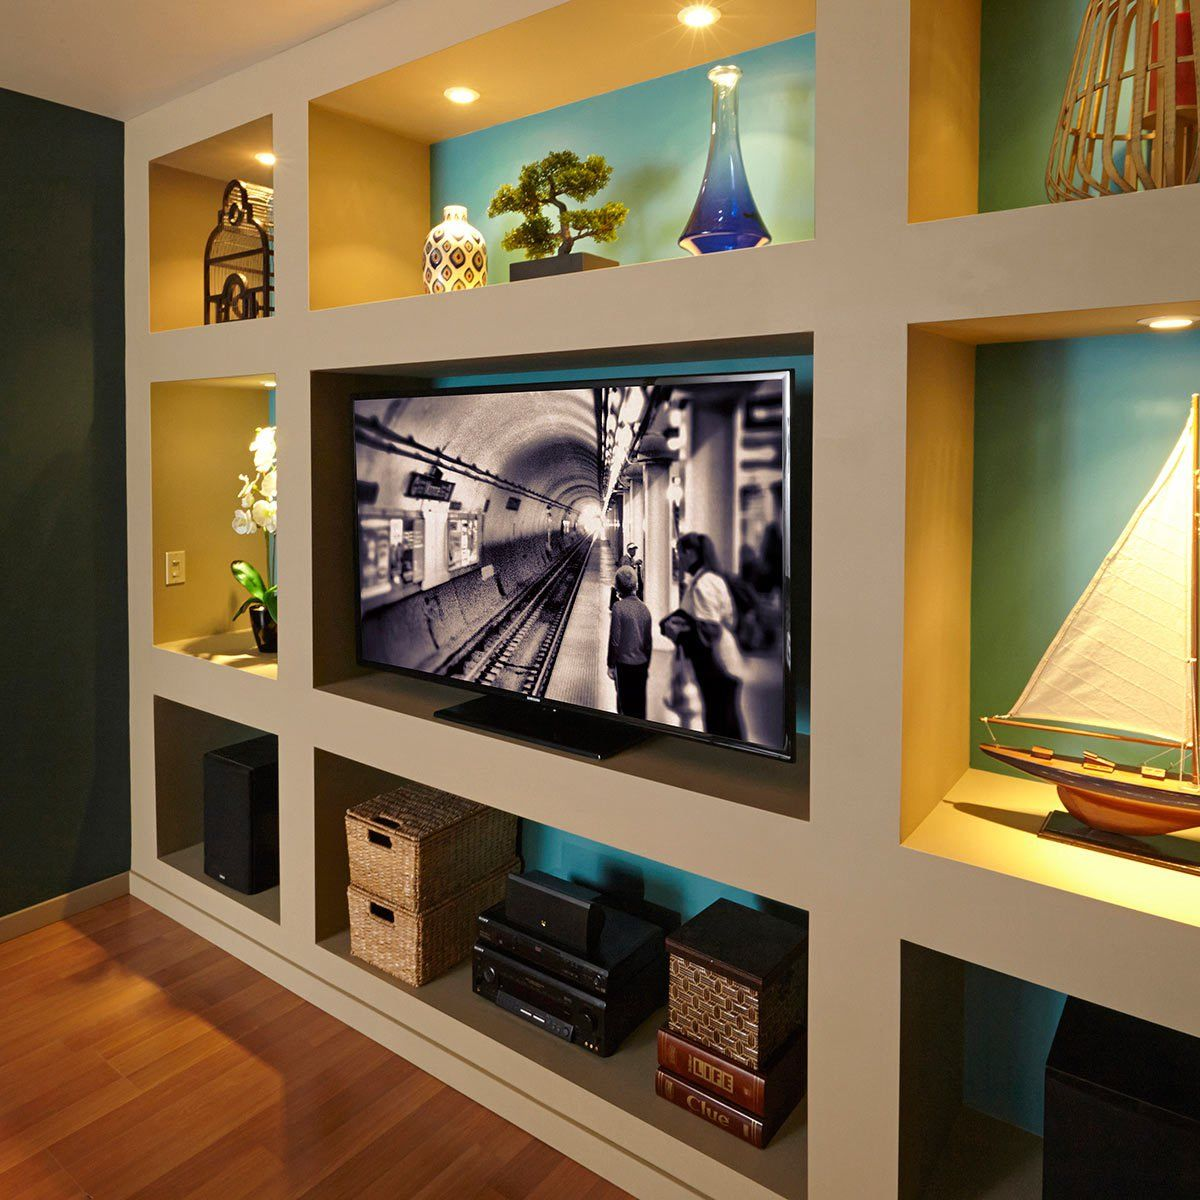 Measuring For A Tv Accent Wall: 15 Stunning Accent Wall Ideas You Can Do